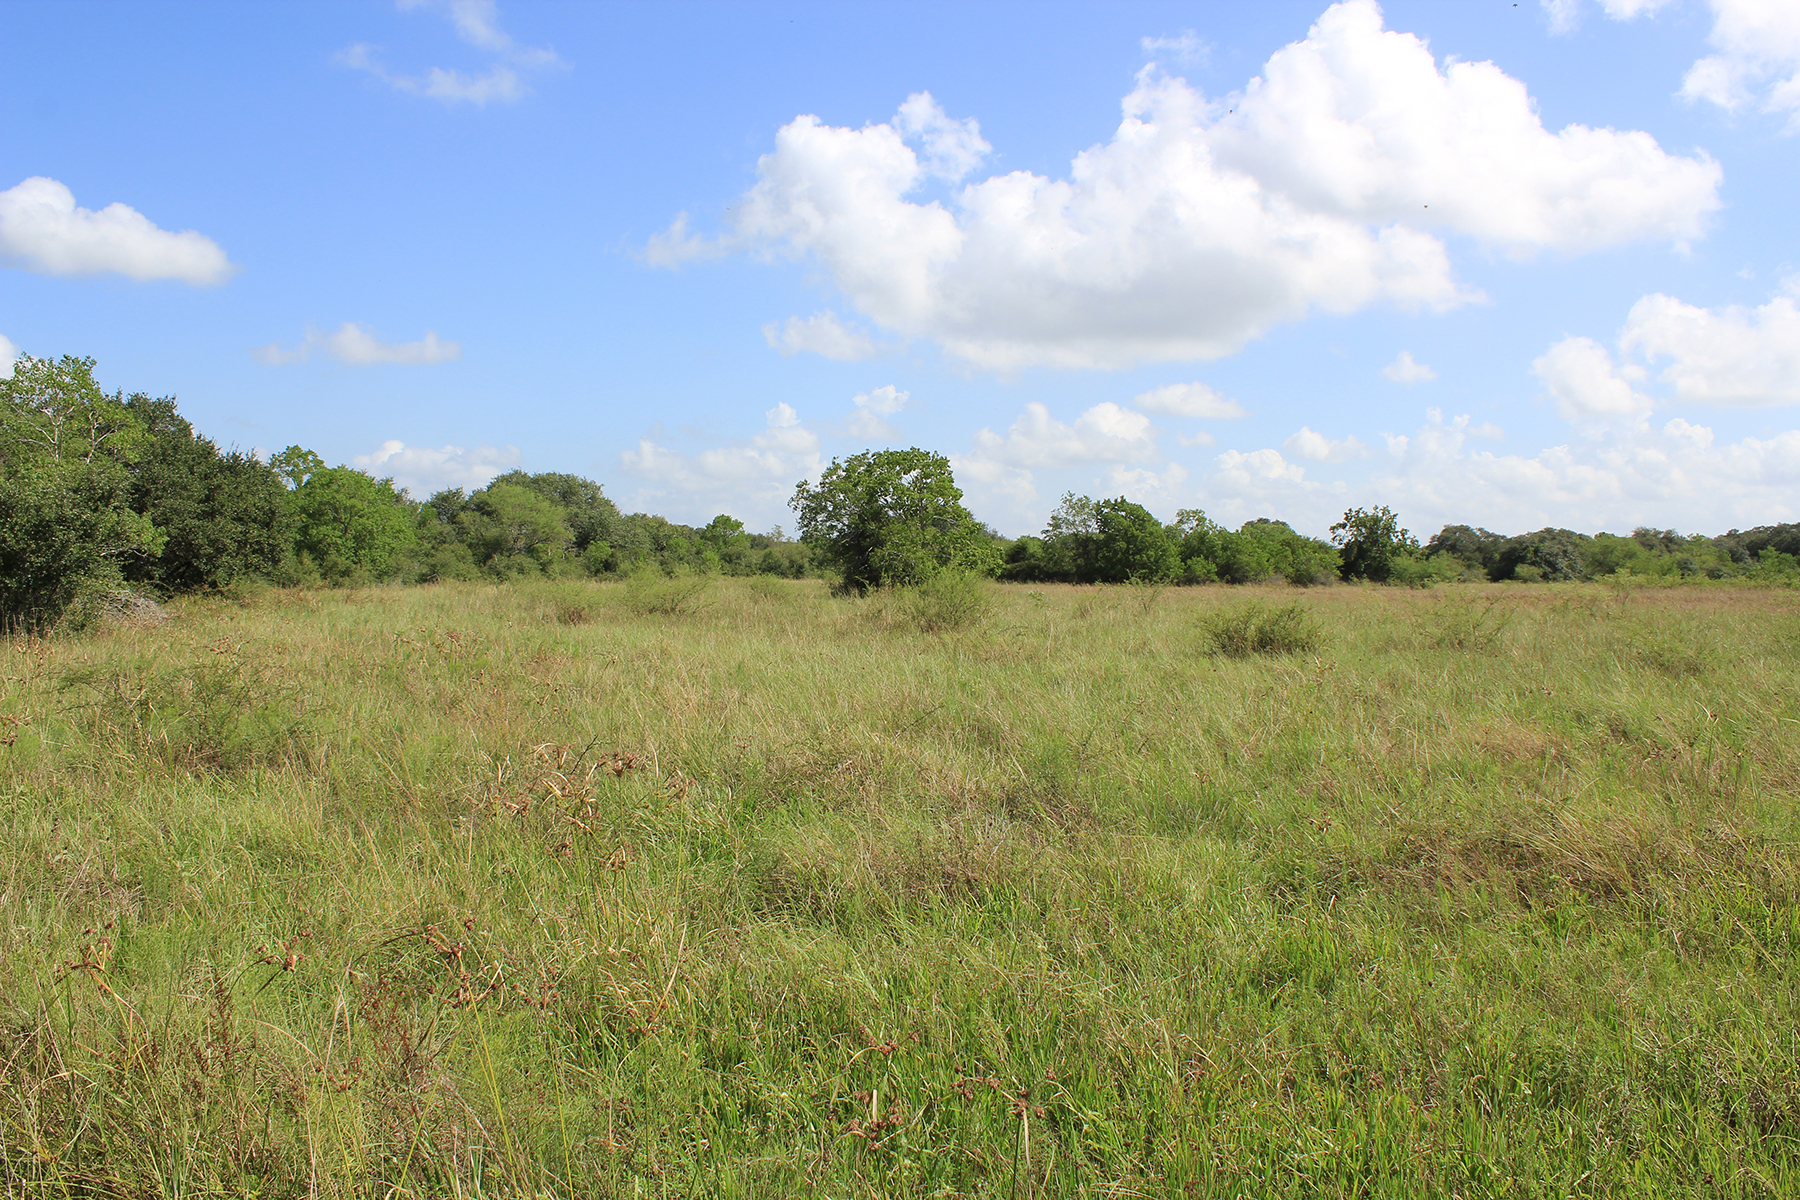 289 acres for sale